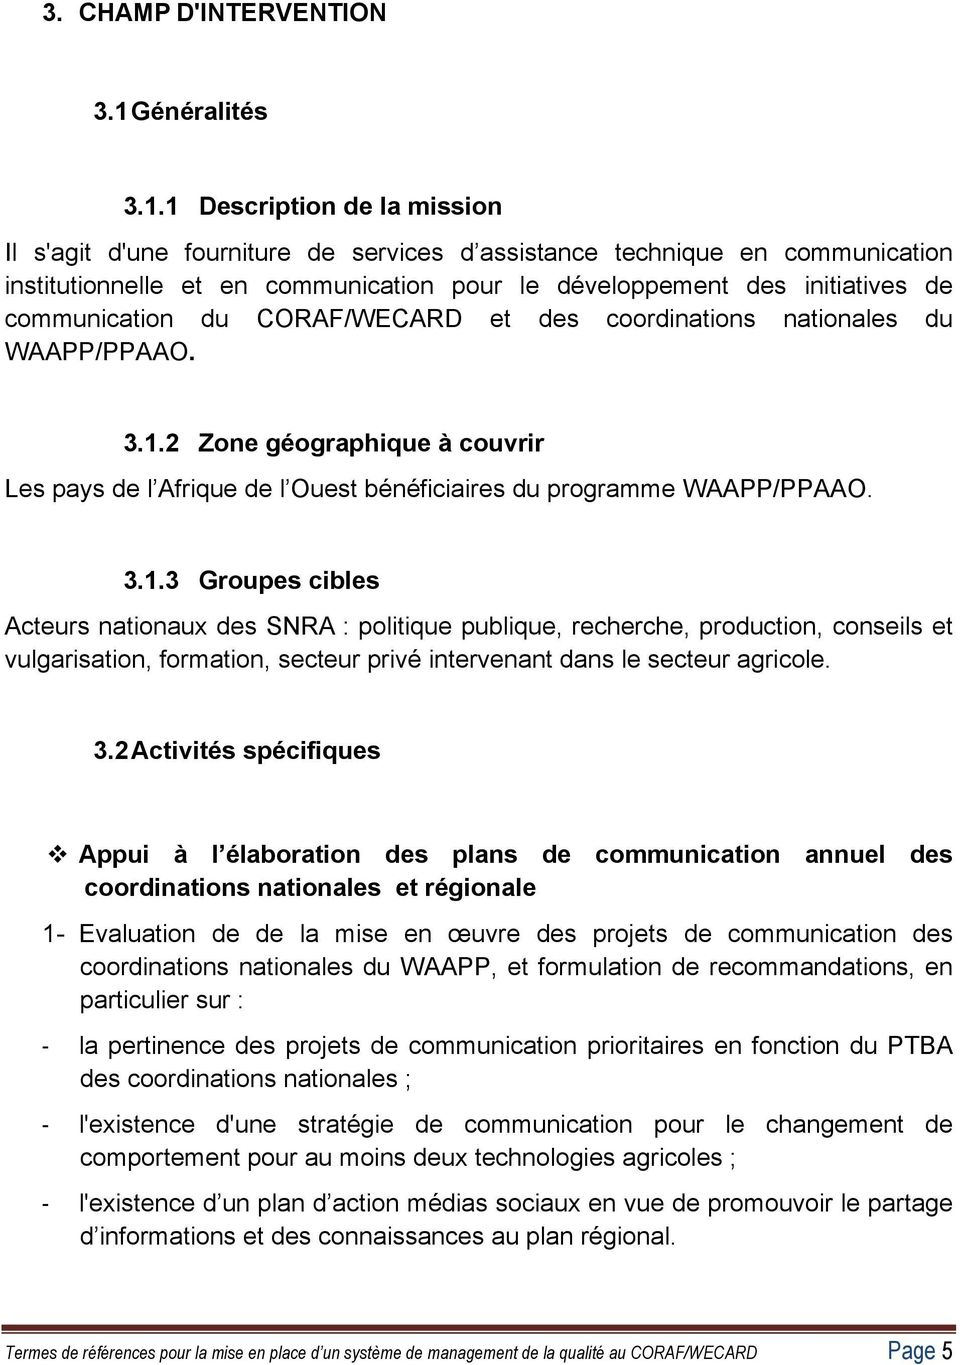 1 Description de la mission Il s'agit d'une fourniture de services d assistance technique en communication institutionnelle et en communication pour le développement des initiatives de communication